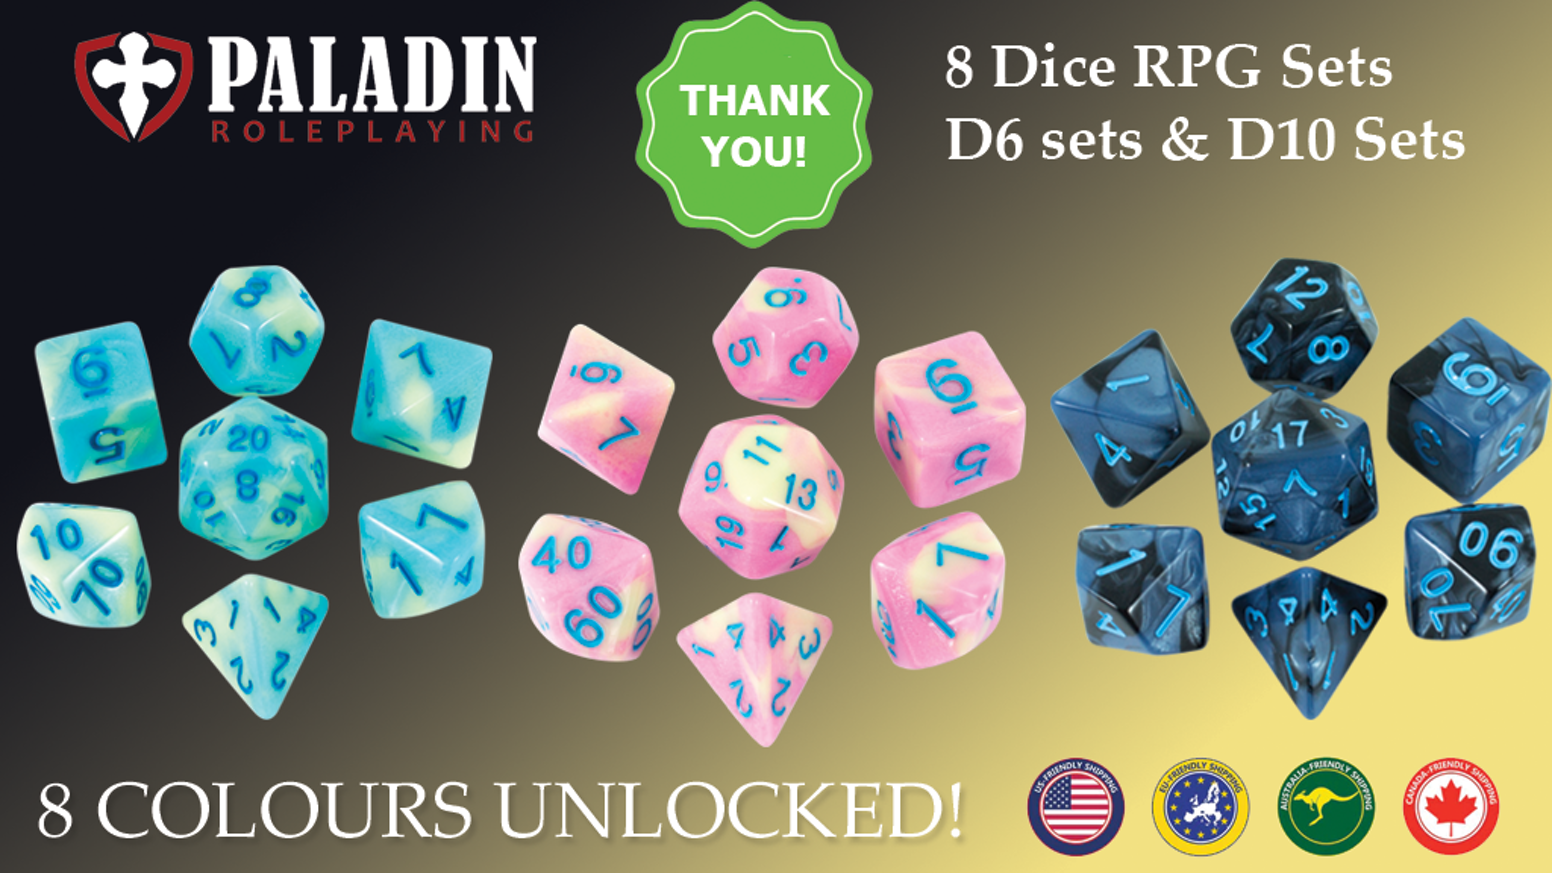 a66799be Gorgeous RPG Dice Sets for DnD and other roleplaying games. Missed the  Kickstarter? No problem! Visit our website for lots of dice loveliness -